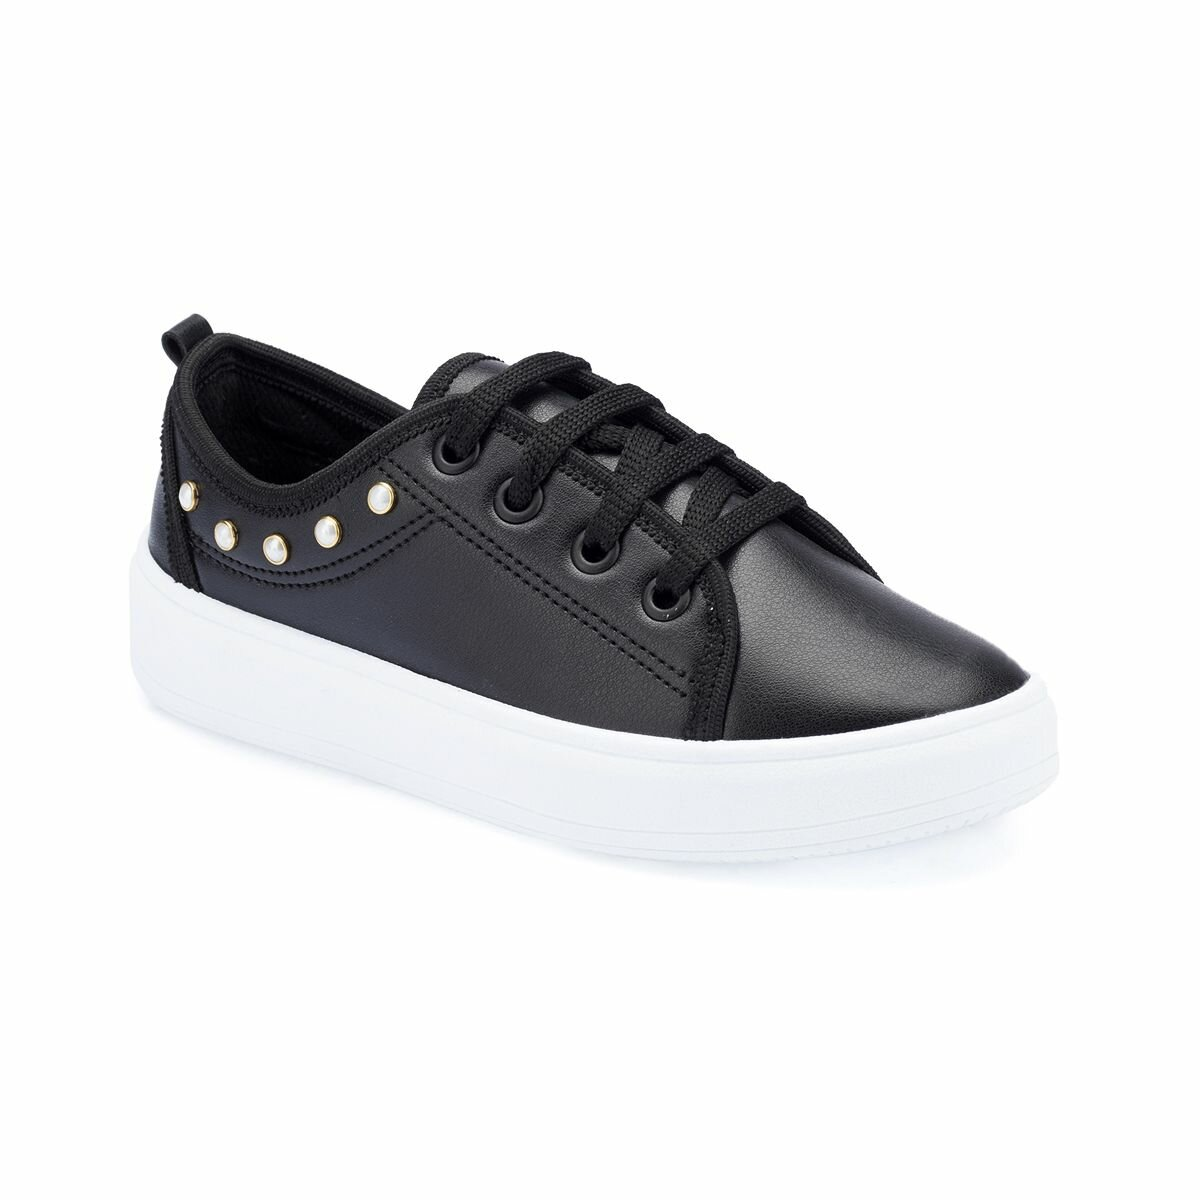 FLO 82.510825.F Black Female Child Sneaker Shoes Polaris